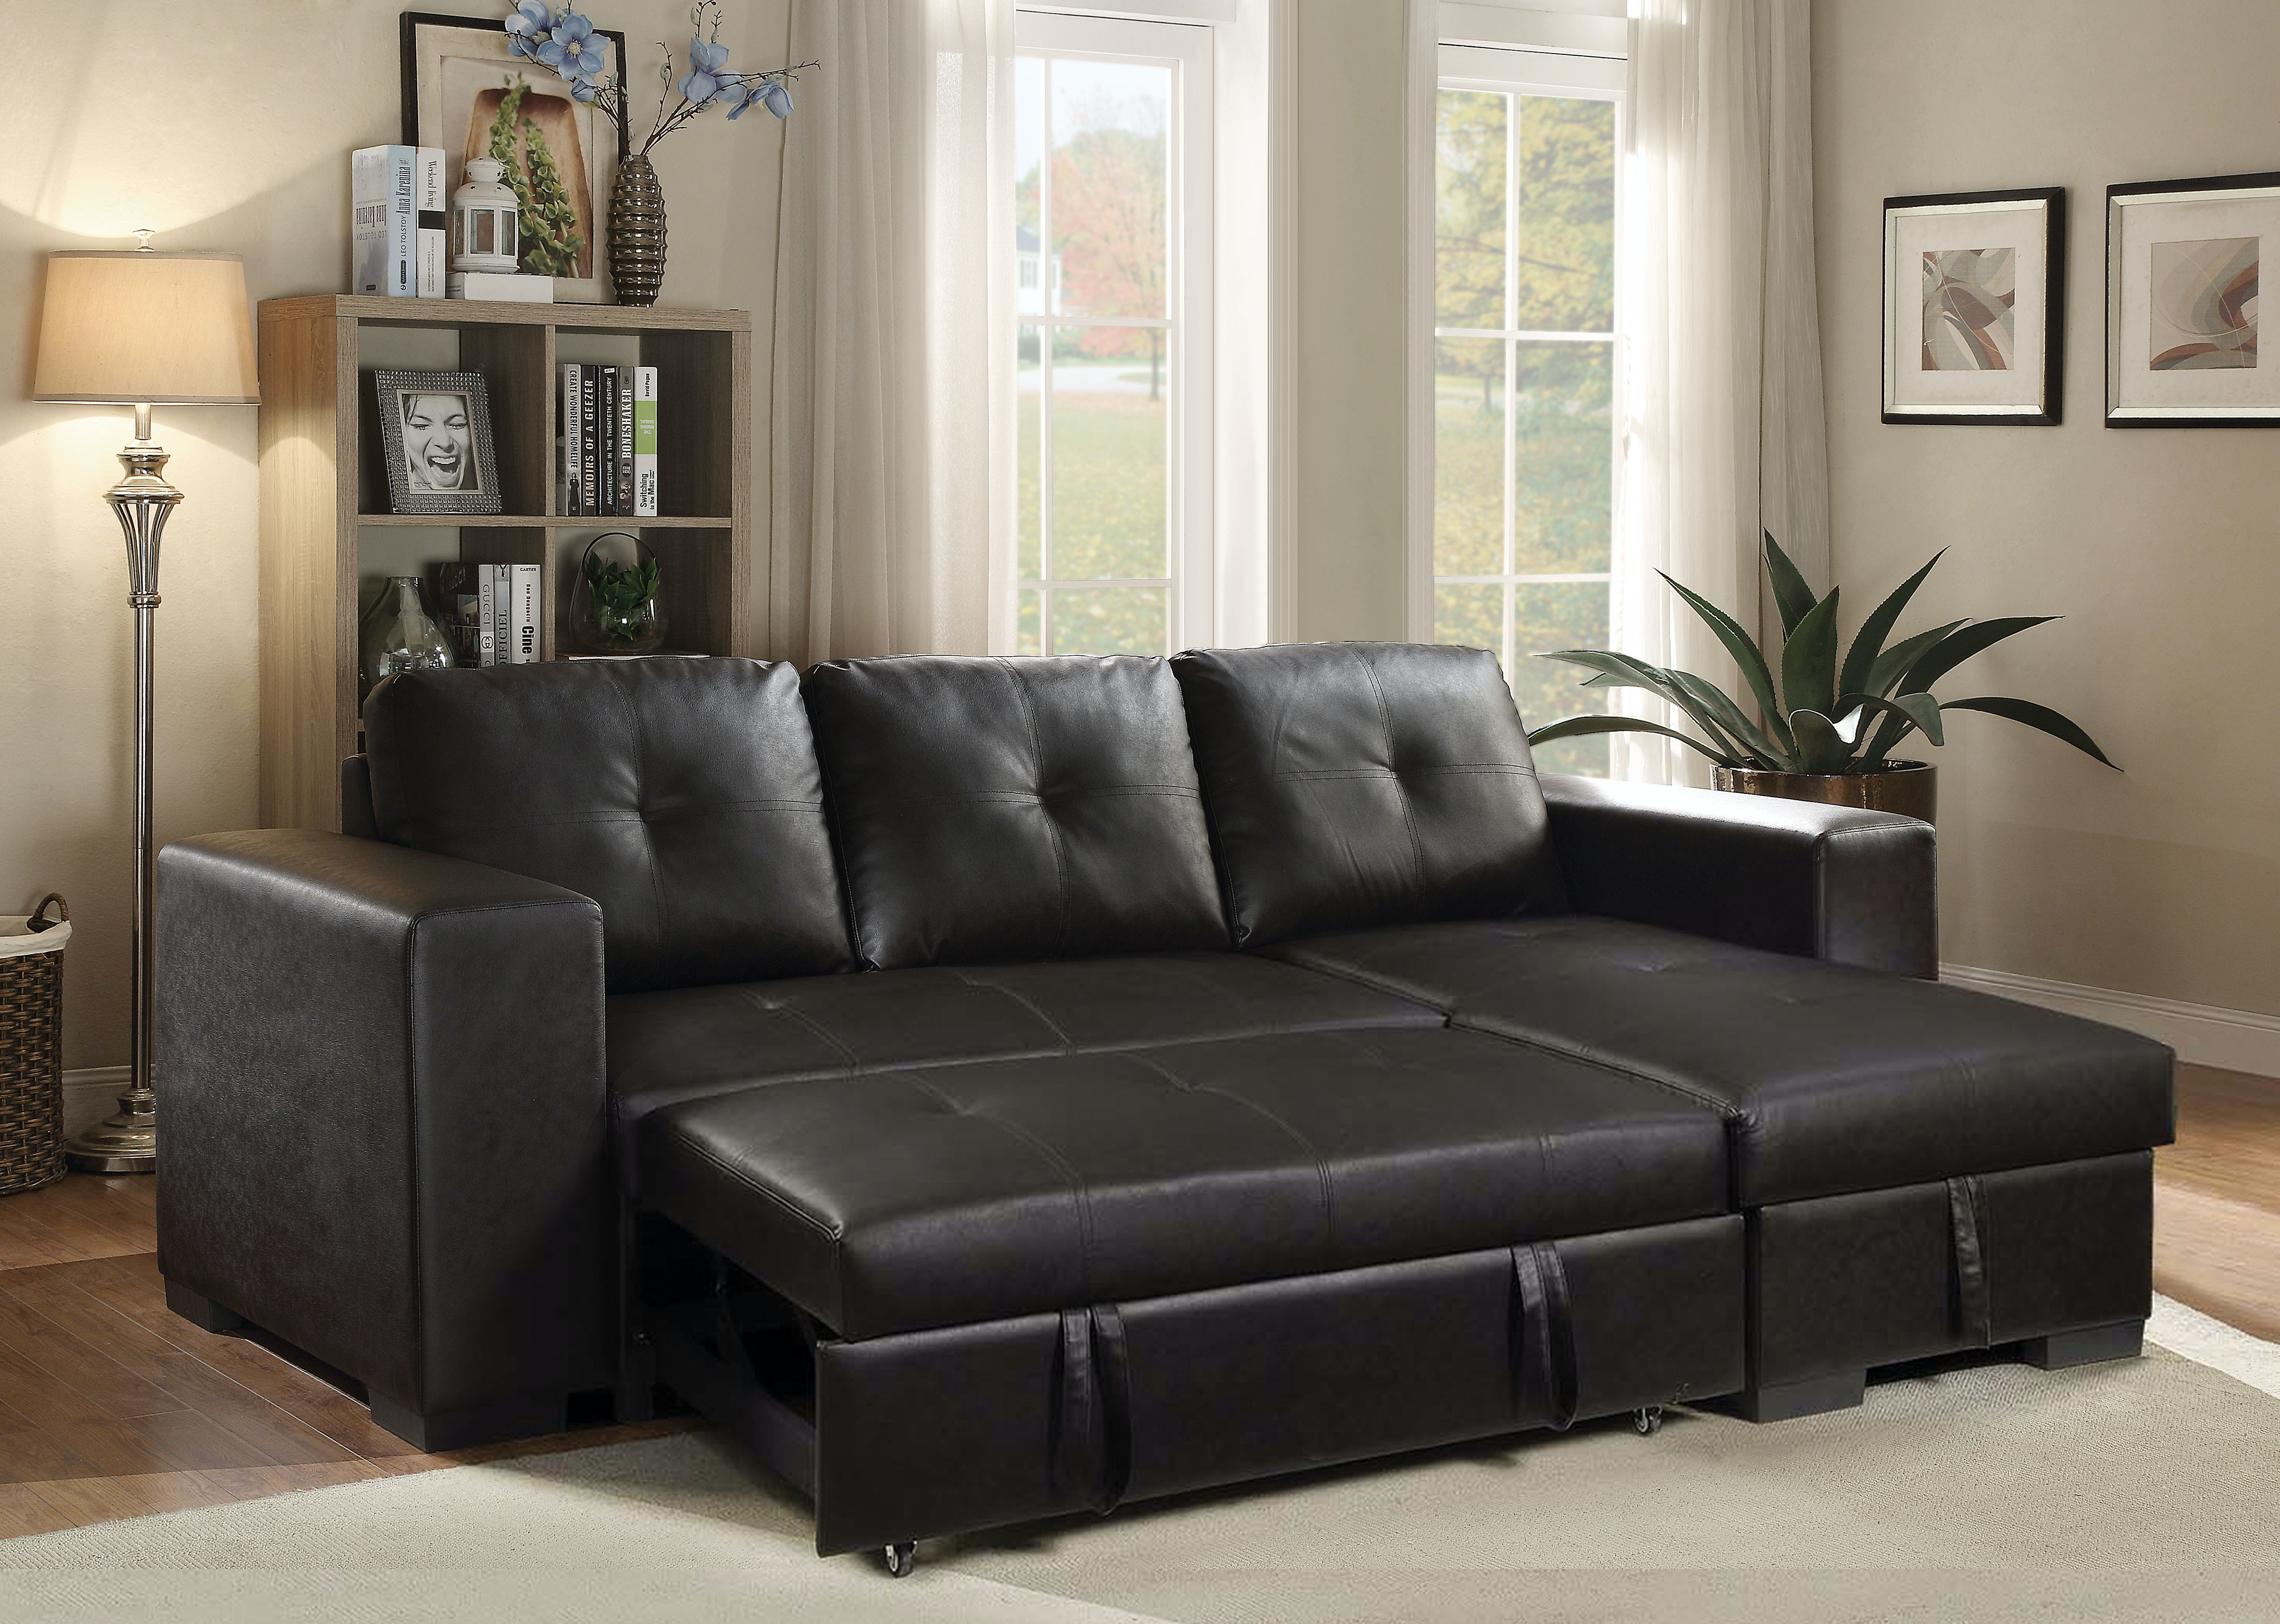 Captivating Acme Furniture Living Room Lloyd Sectional Sofa With Sleeper 53345   Hi  Desert Furniture   Victorville, CA